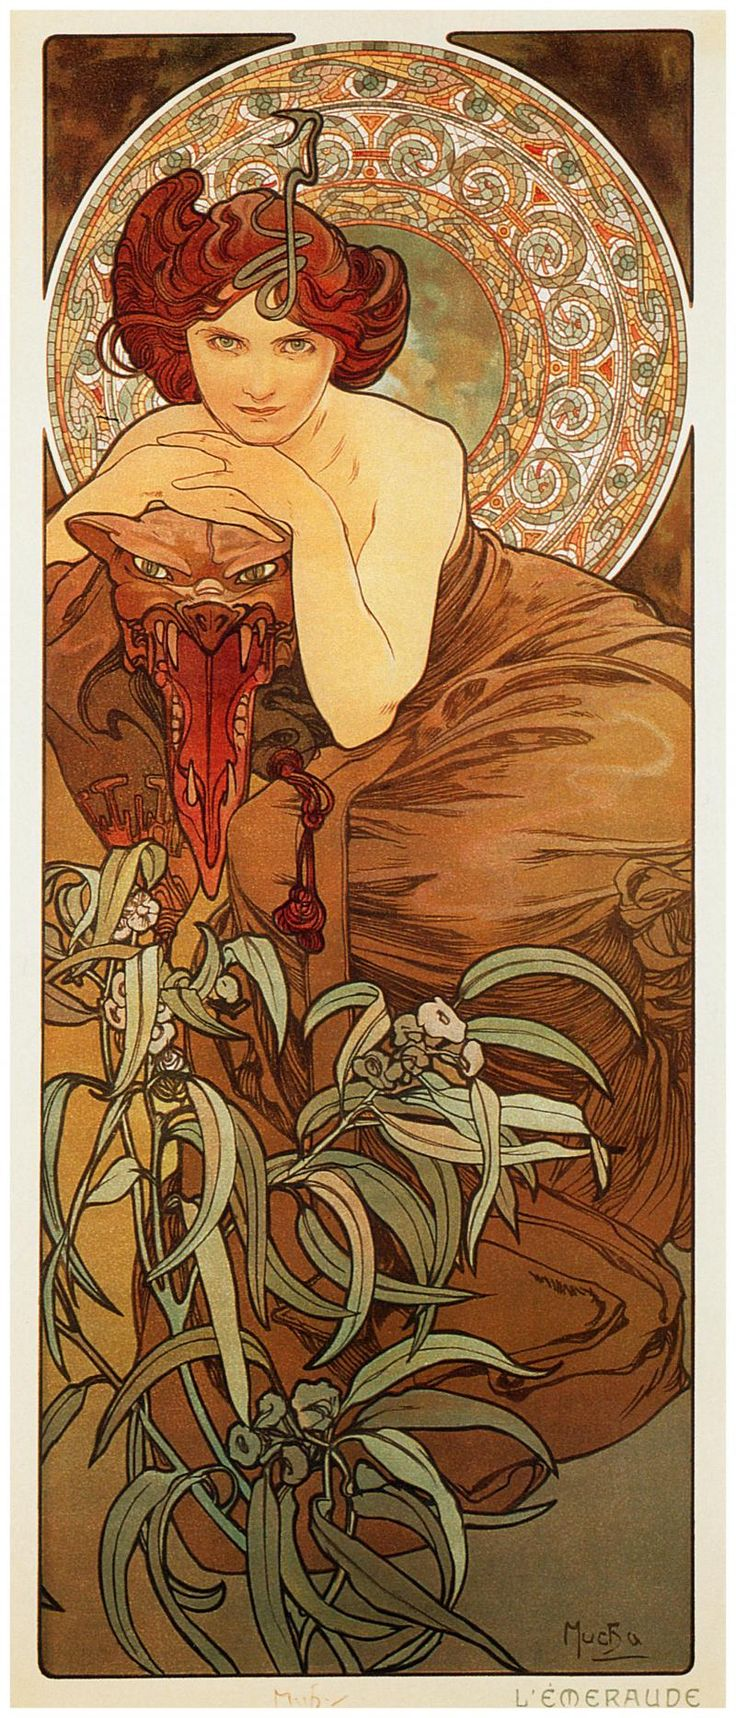 Alphonse Maria Mucha Emerald From The Precious Stones Series 1900